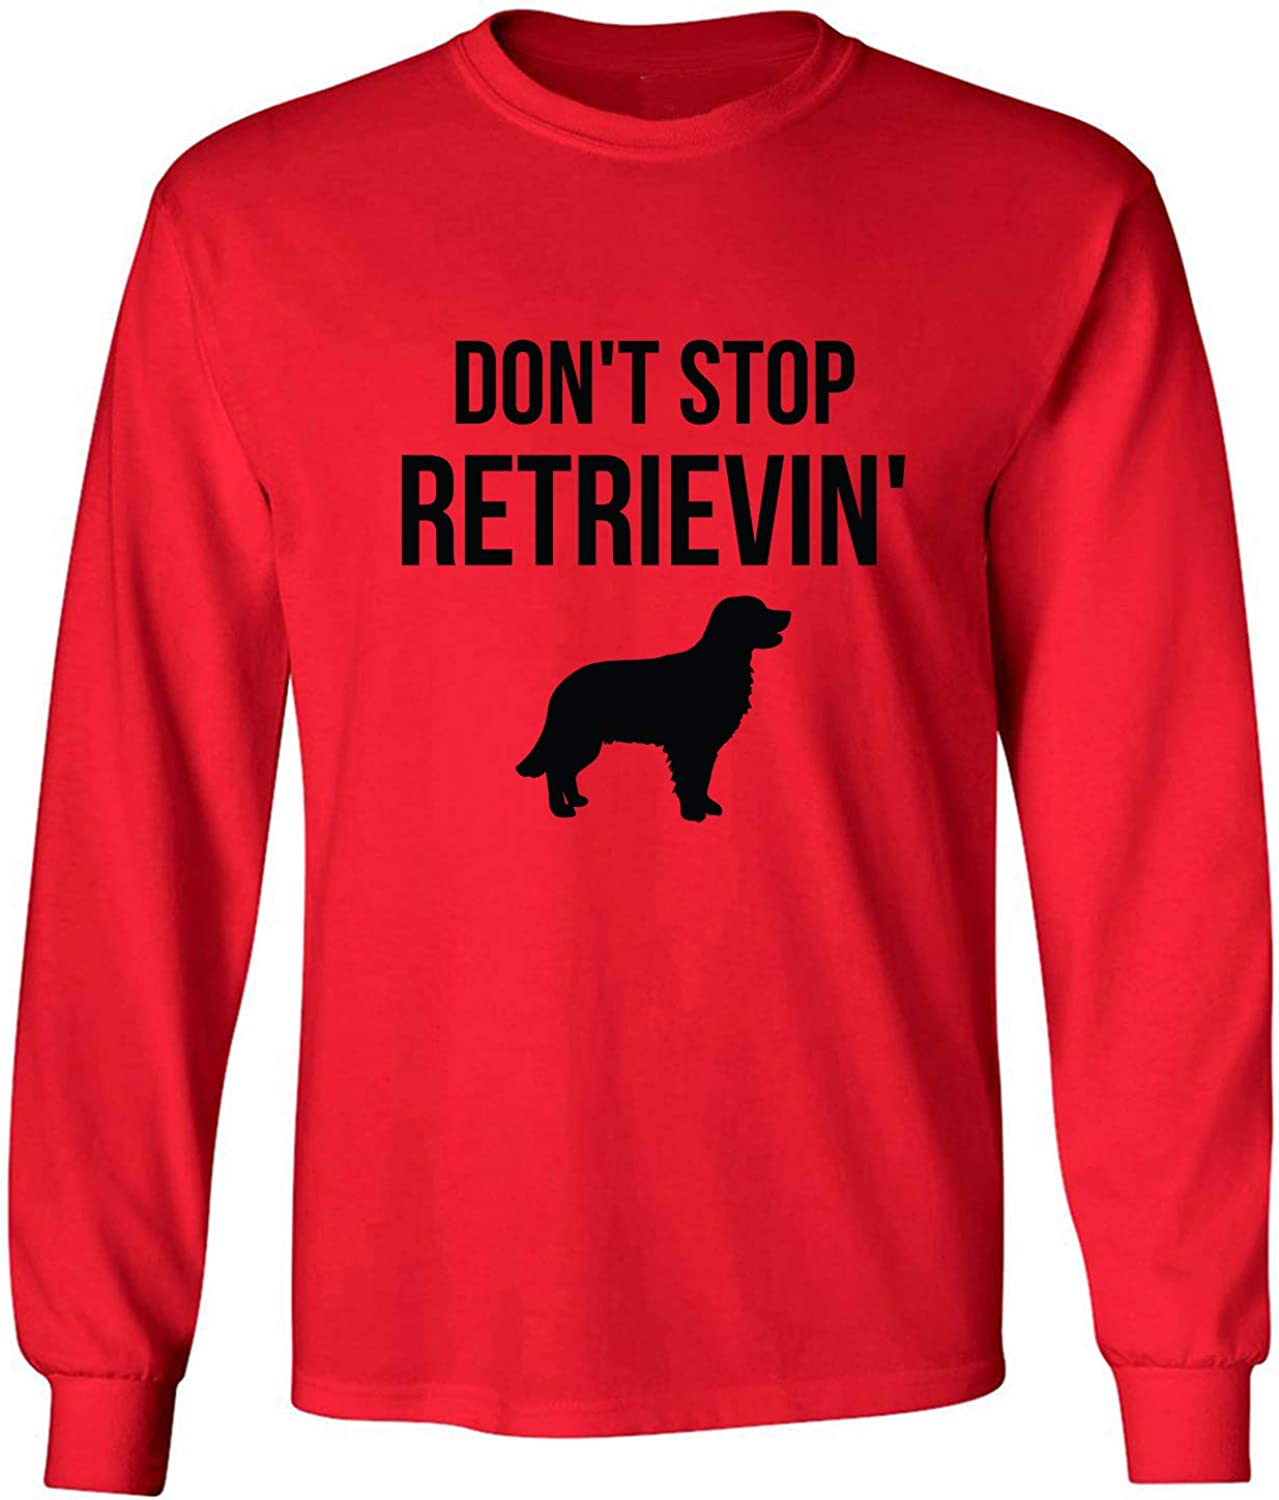 Don't Stop Retrievin' Adult Long Sleeve T-Shirt in Red - XXXX-Large